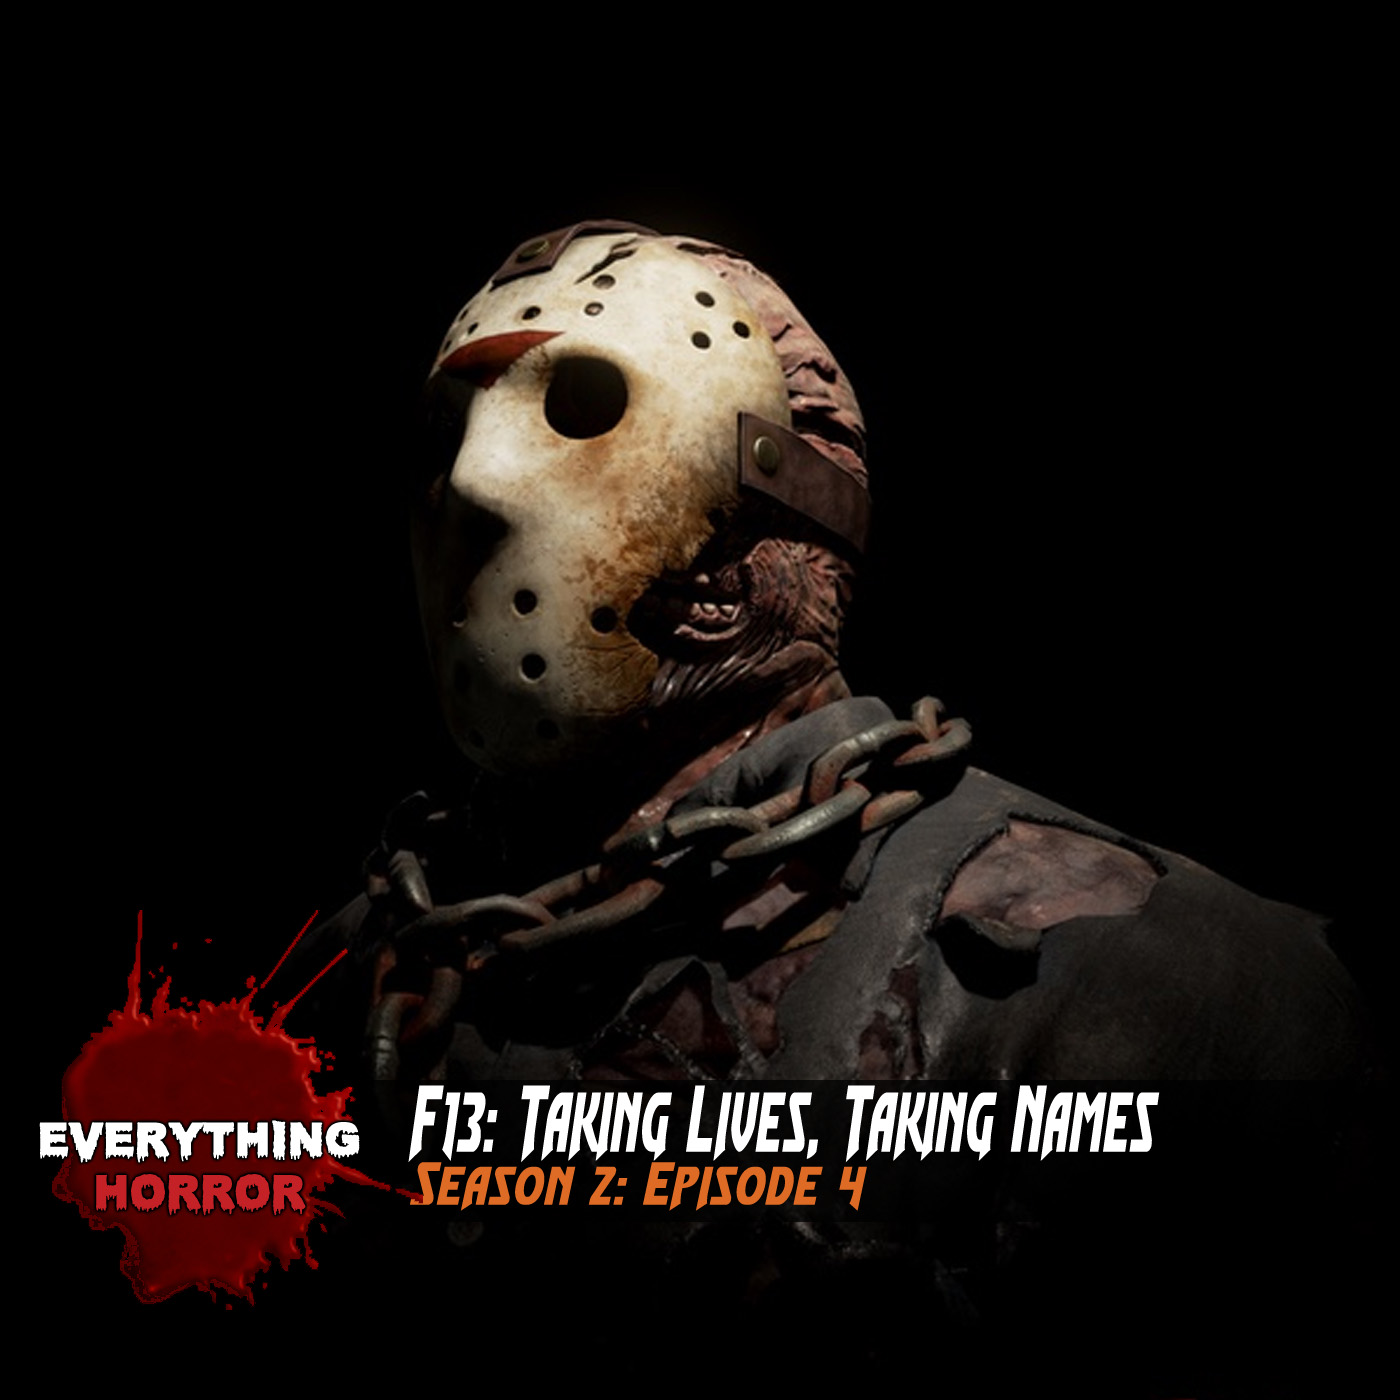 S2: Ep 4. F13: Taking Lives, Taking Names